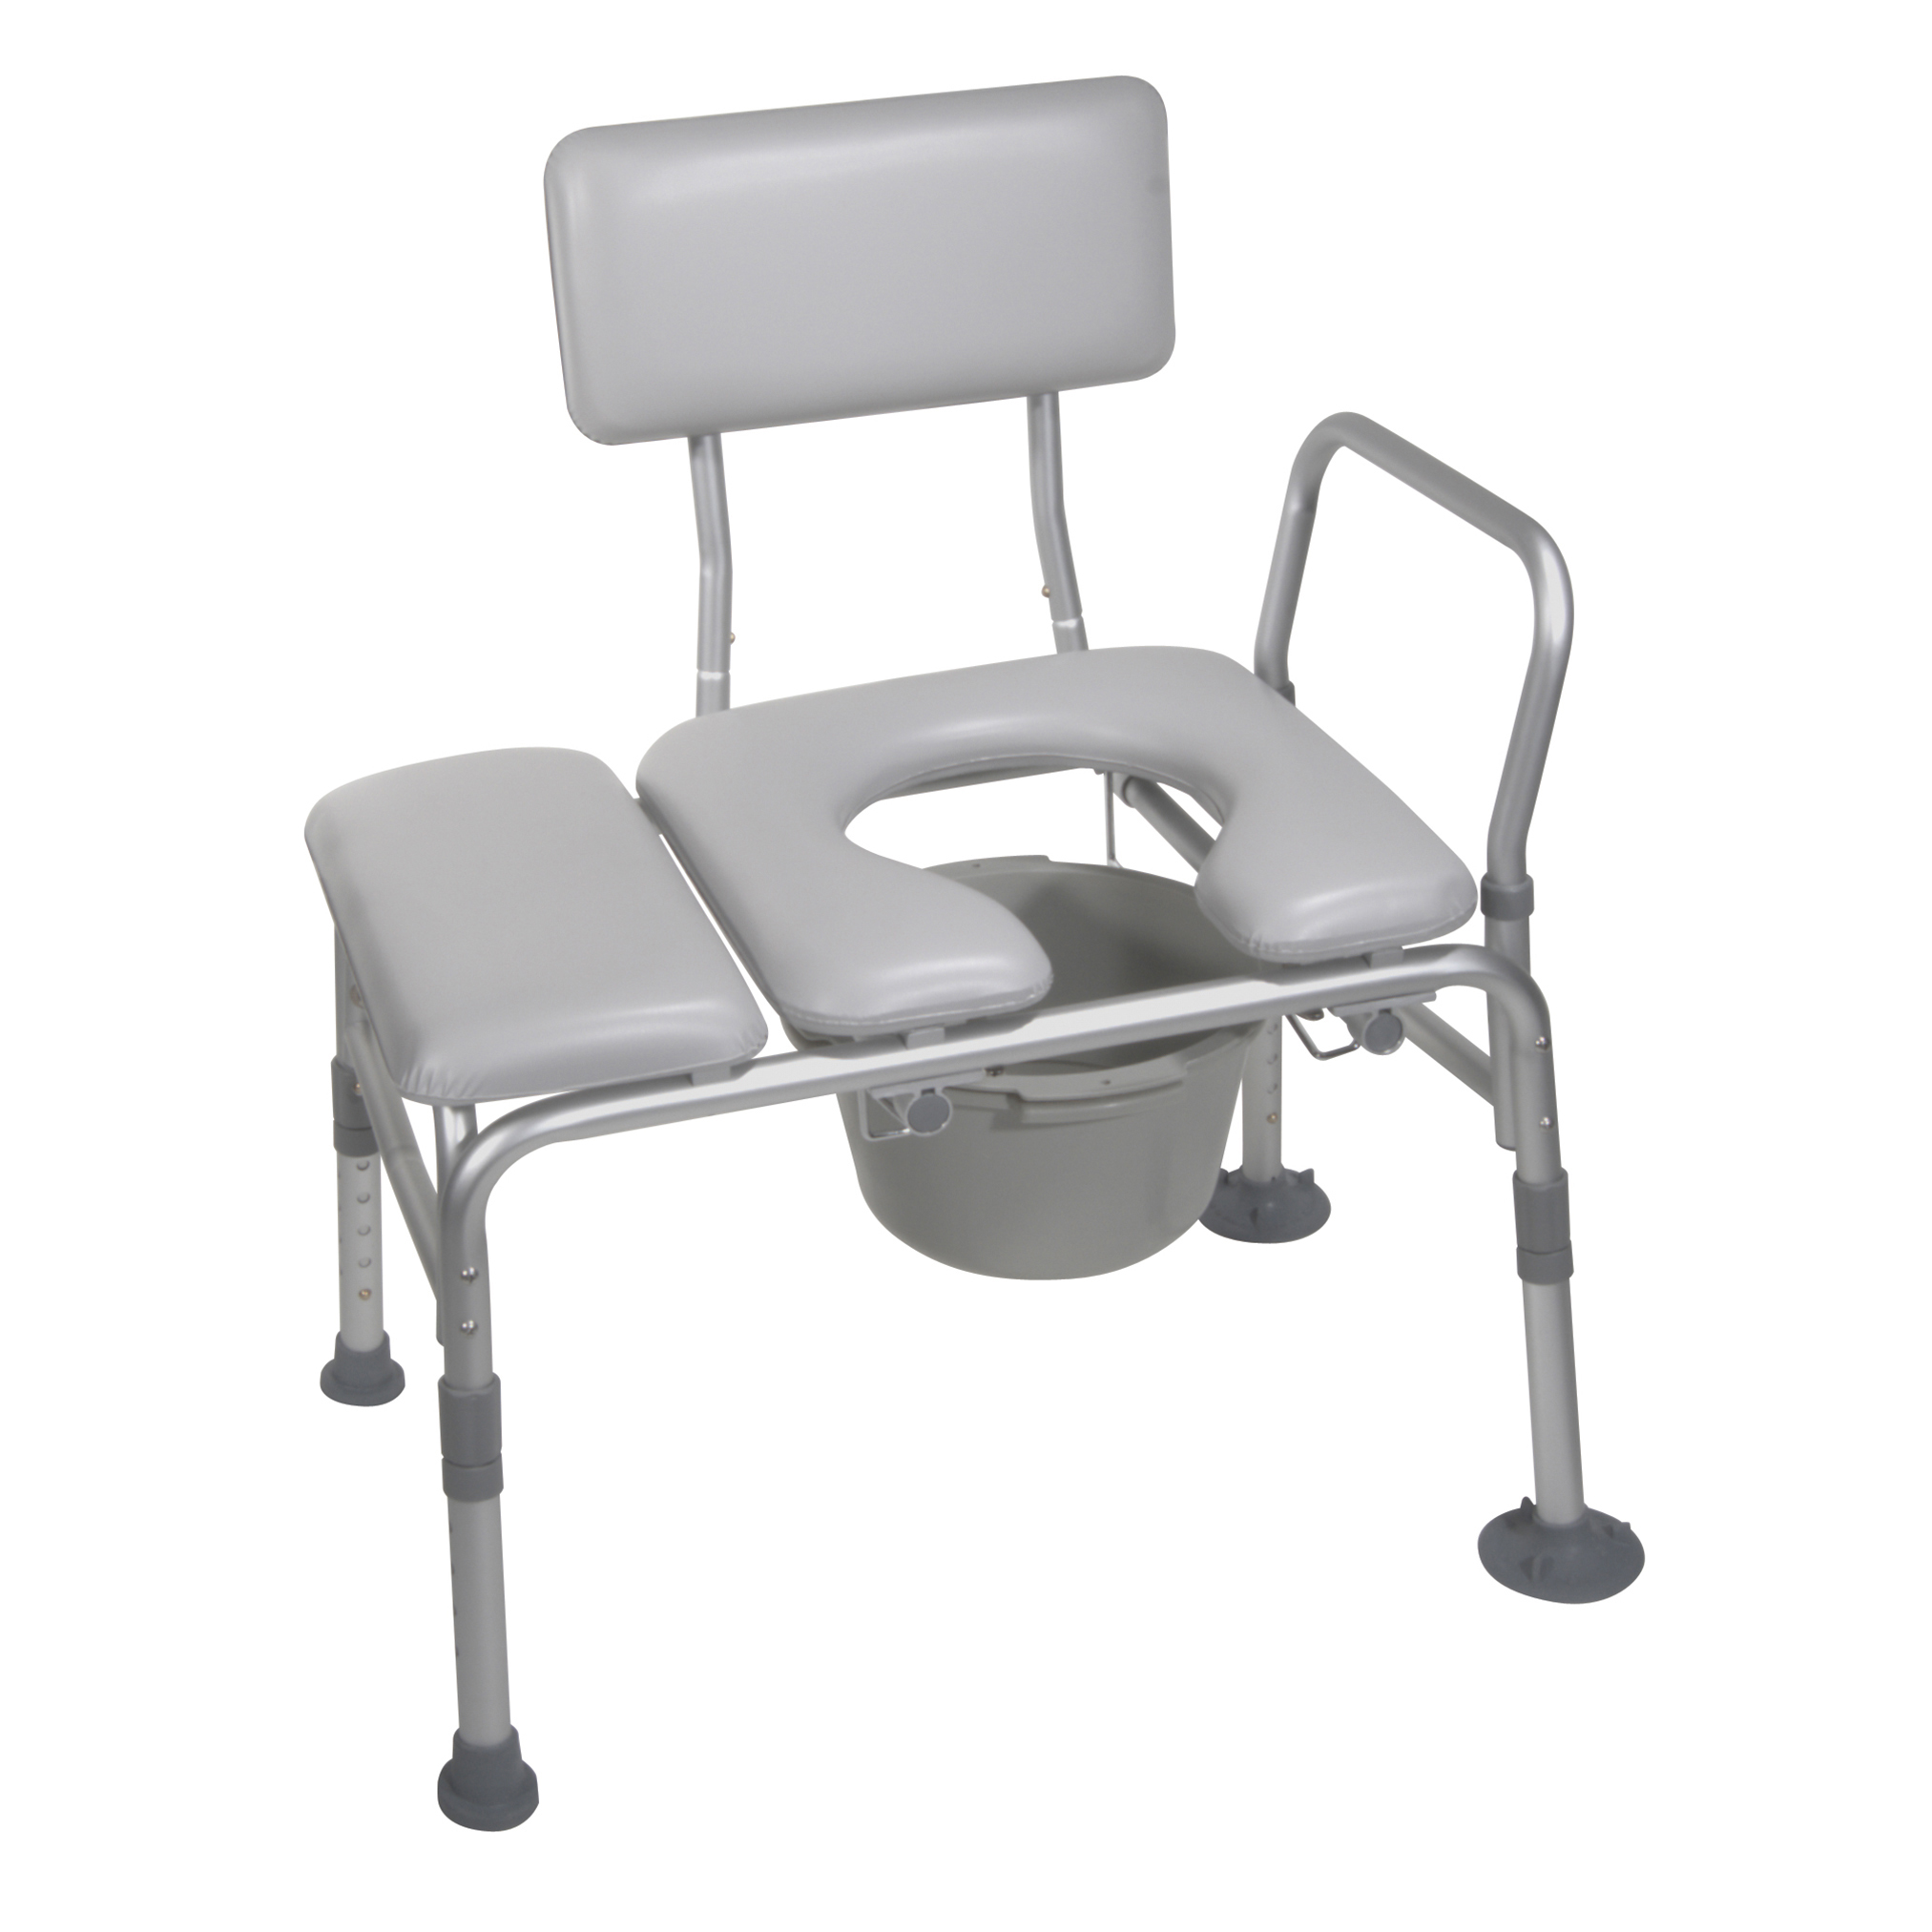 transfer shower chair red covers for folding chairs tub bench sliding avacare medical best two in one